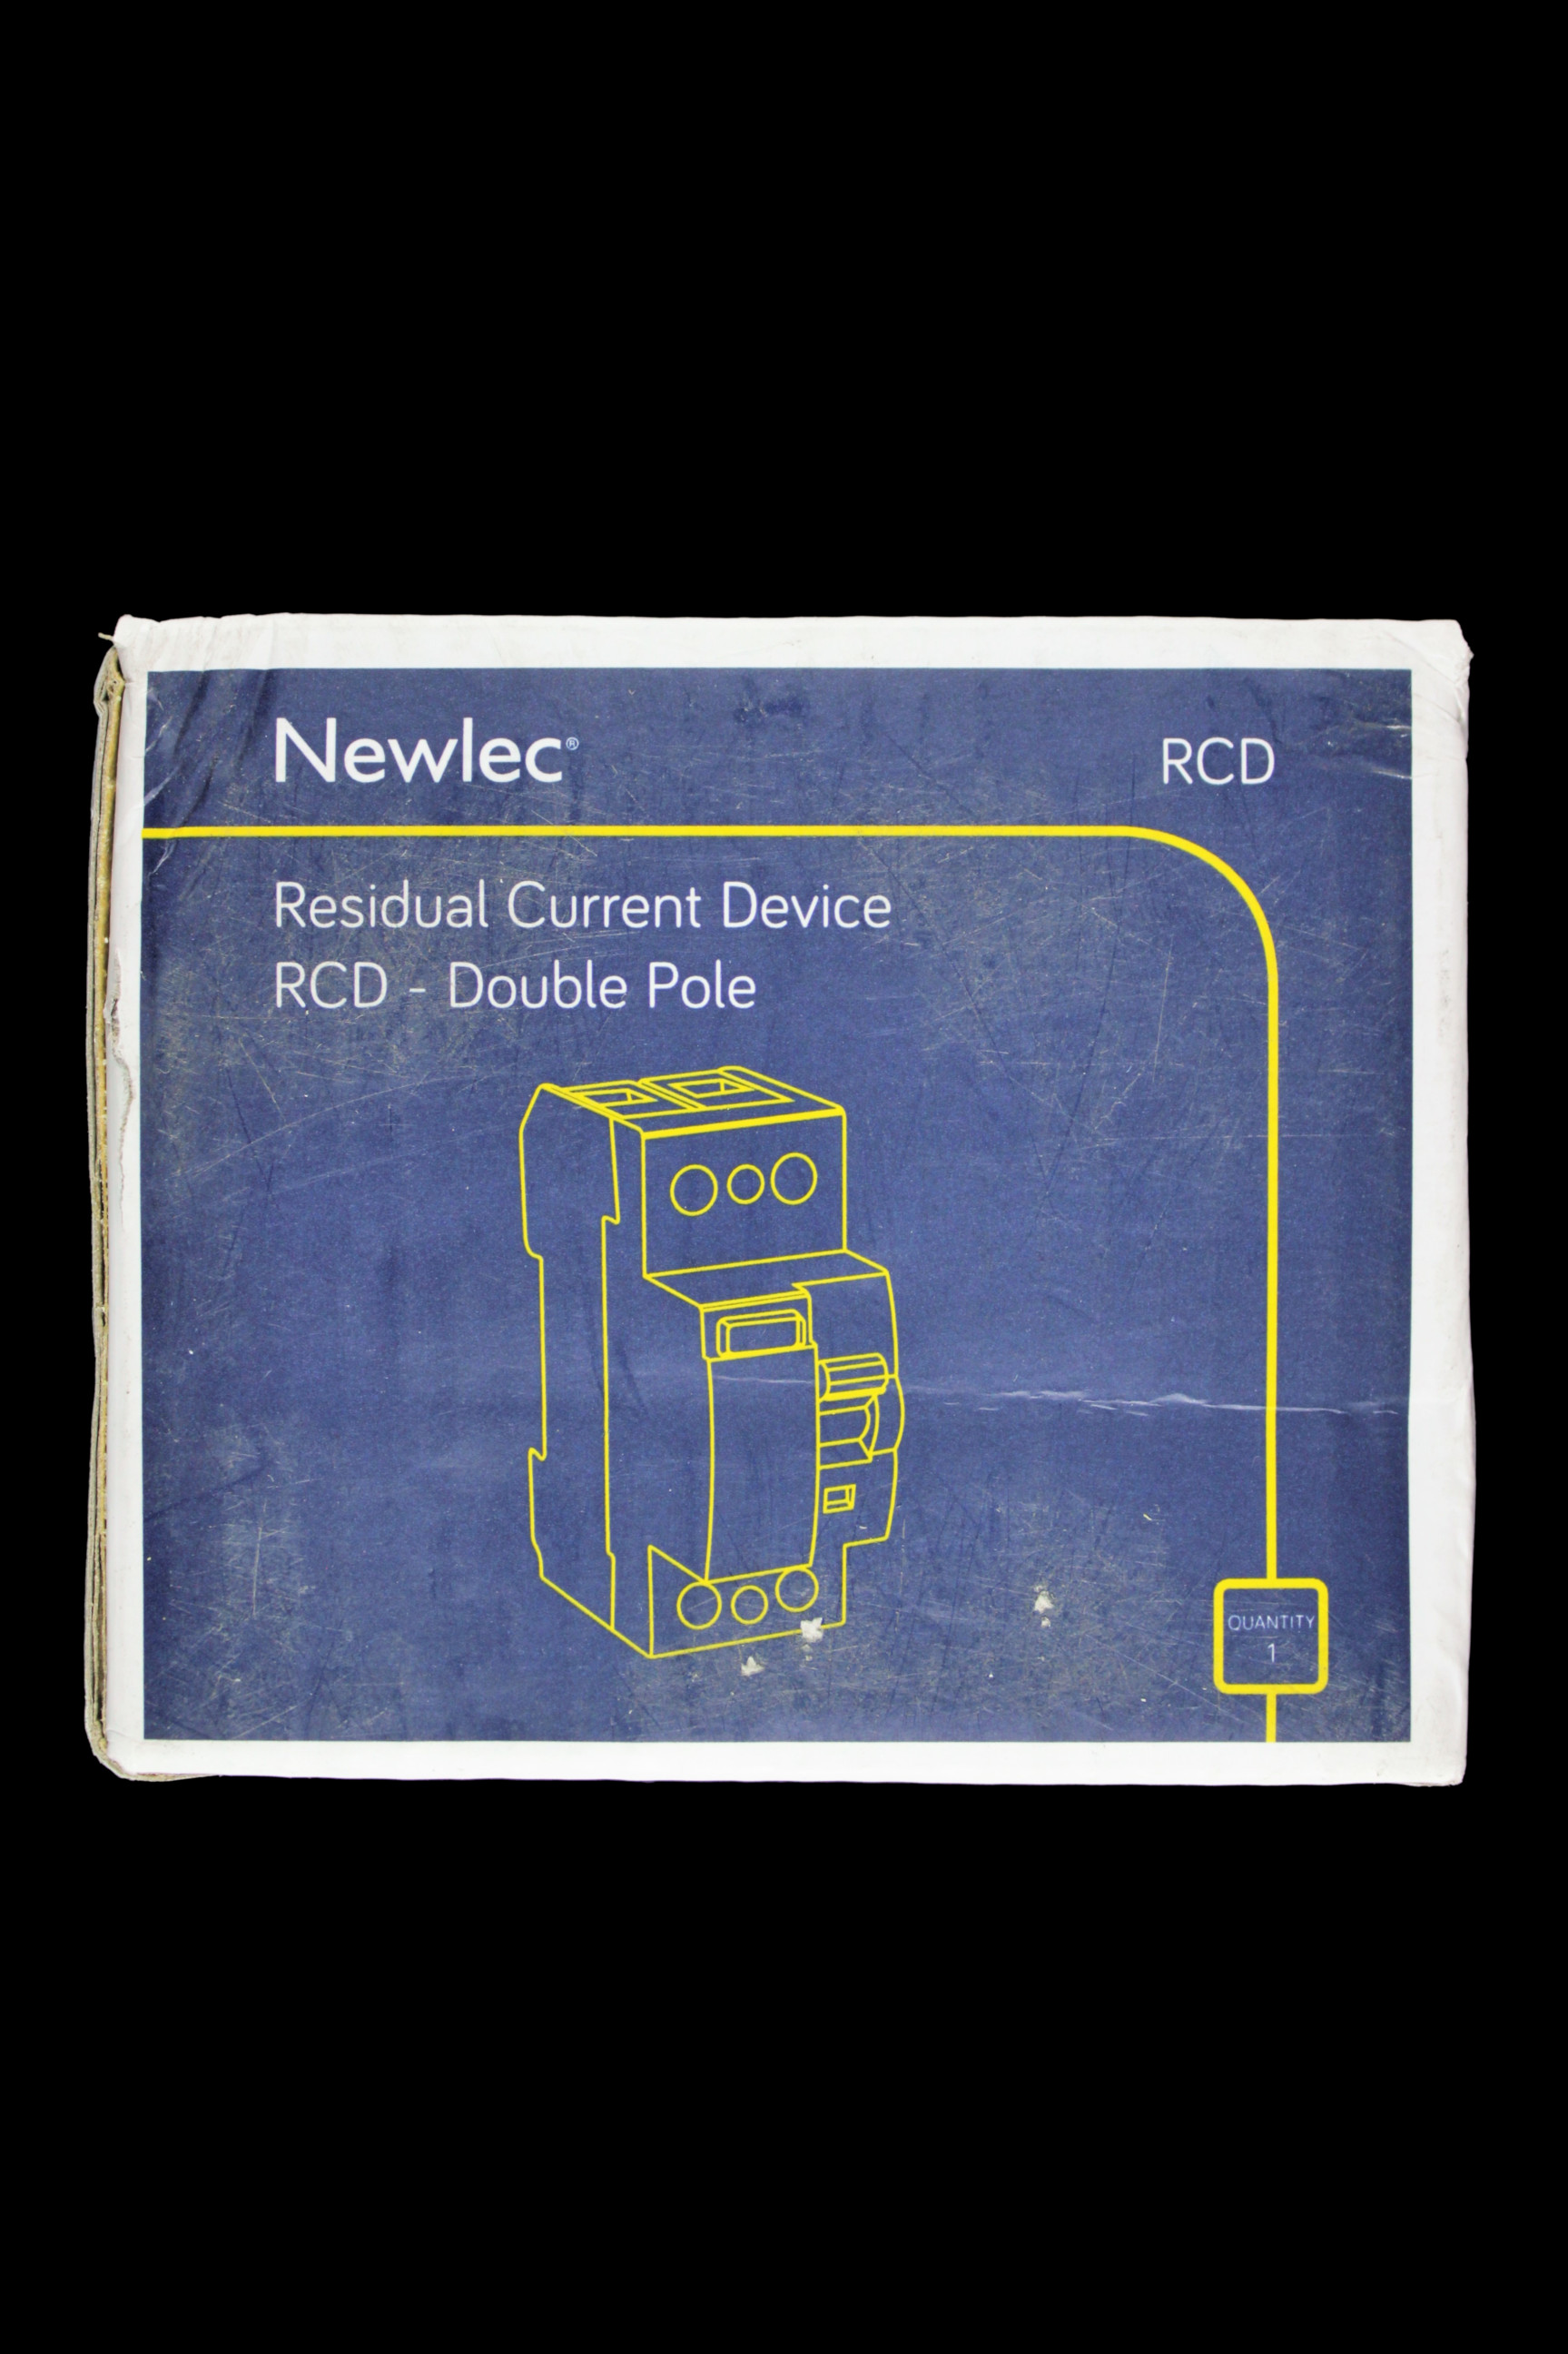 NEWLEC 80 AMP 100mA DOUBLE POLE RCD NLRCD80100AA - NEWLEC - Circuit on